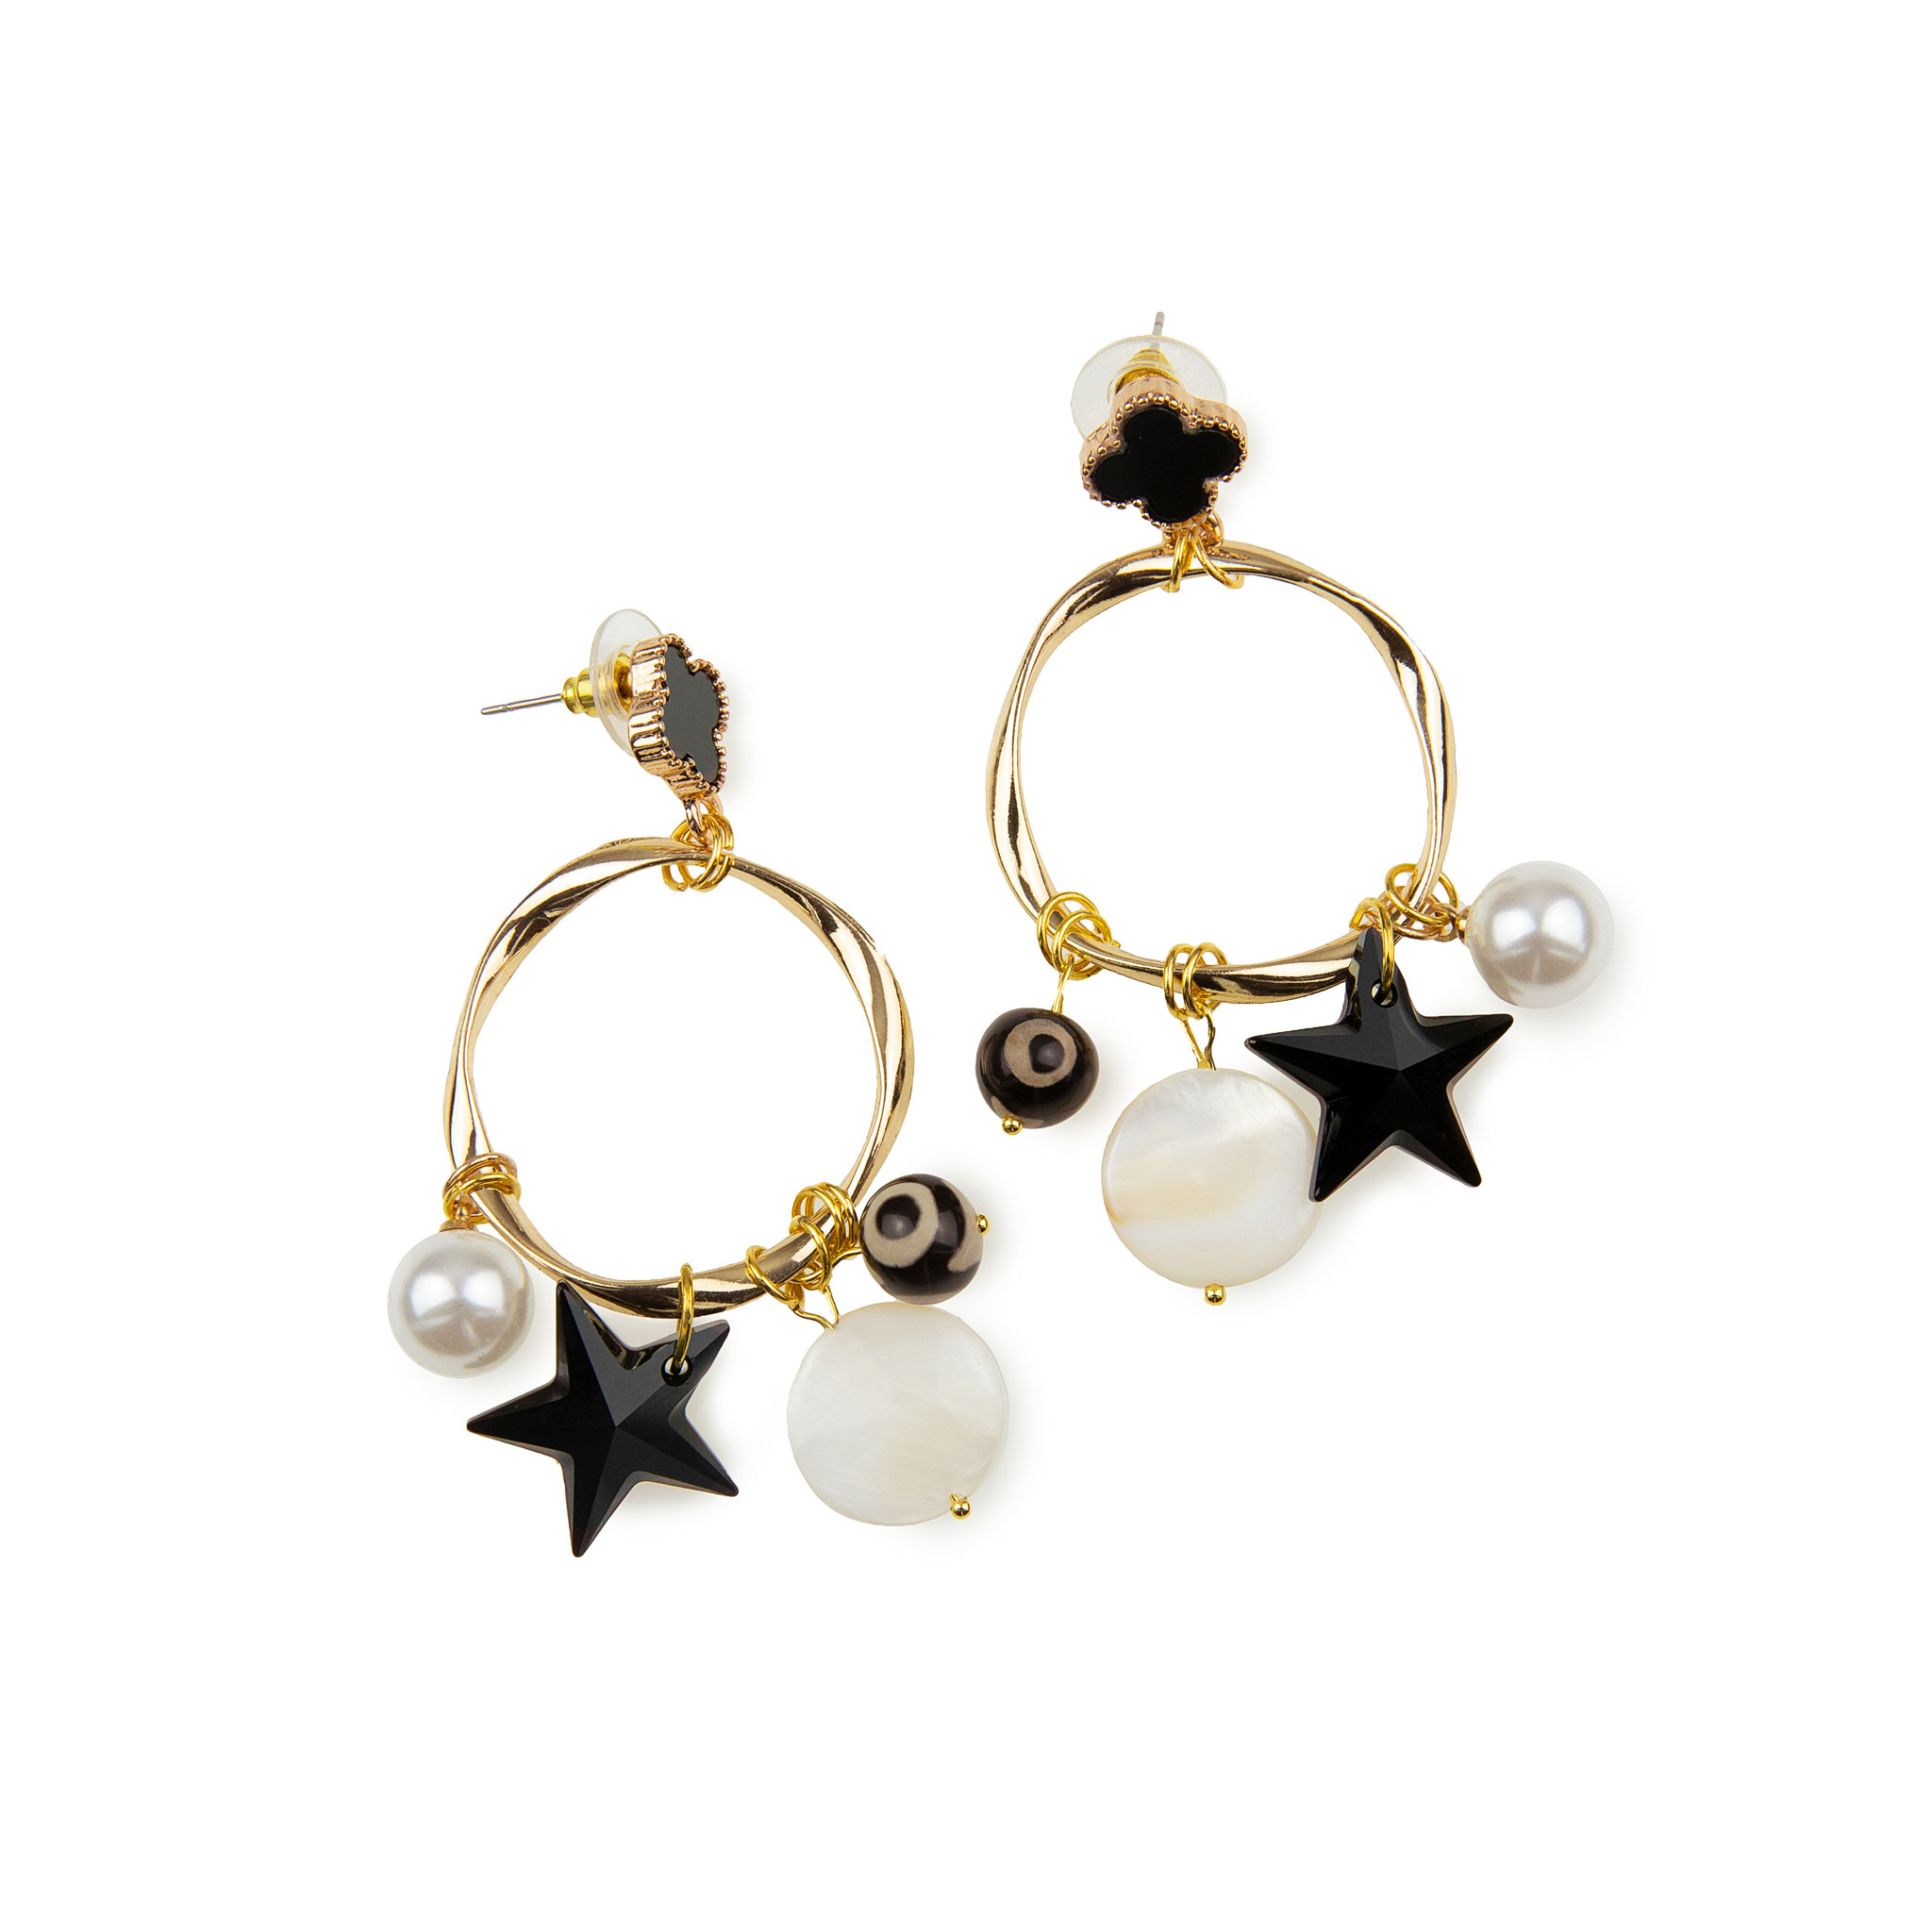 Drop earrings decorated with golden details, Swarovski Pearls, Agate Stone and Freshwater Pearls